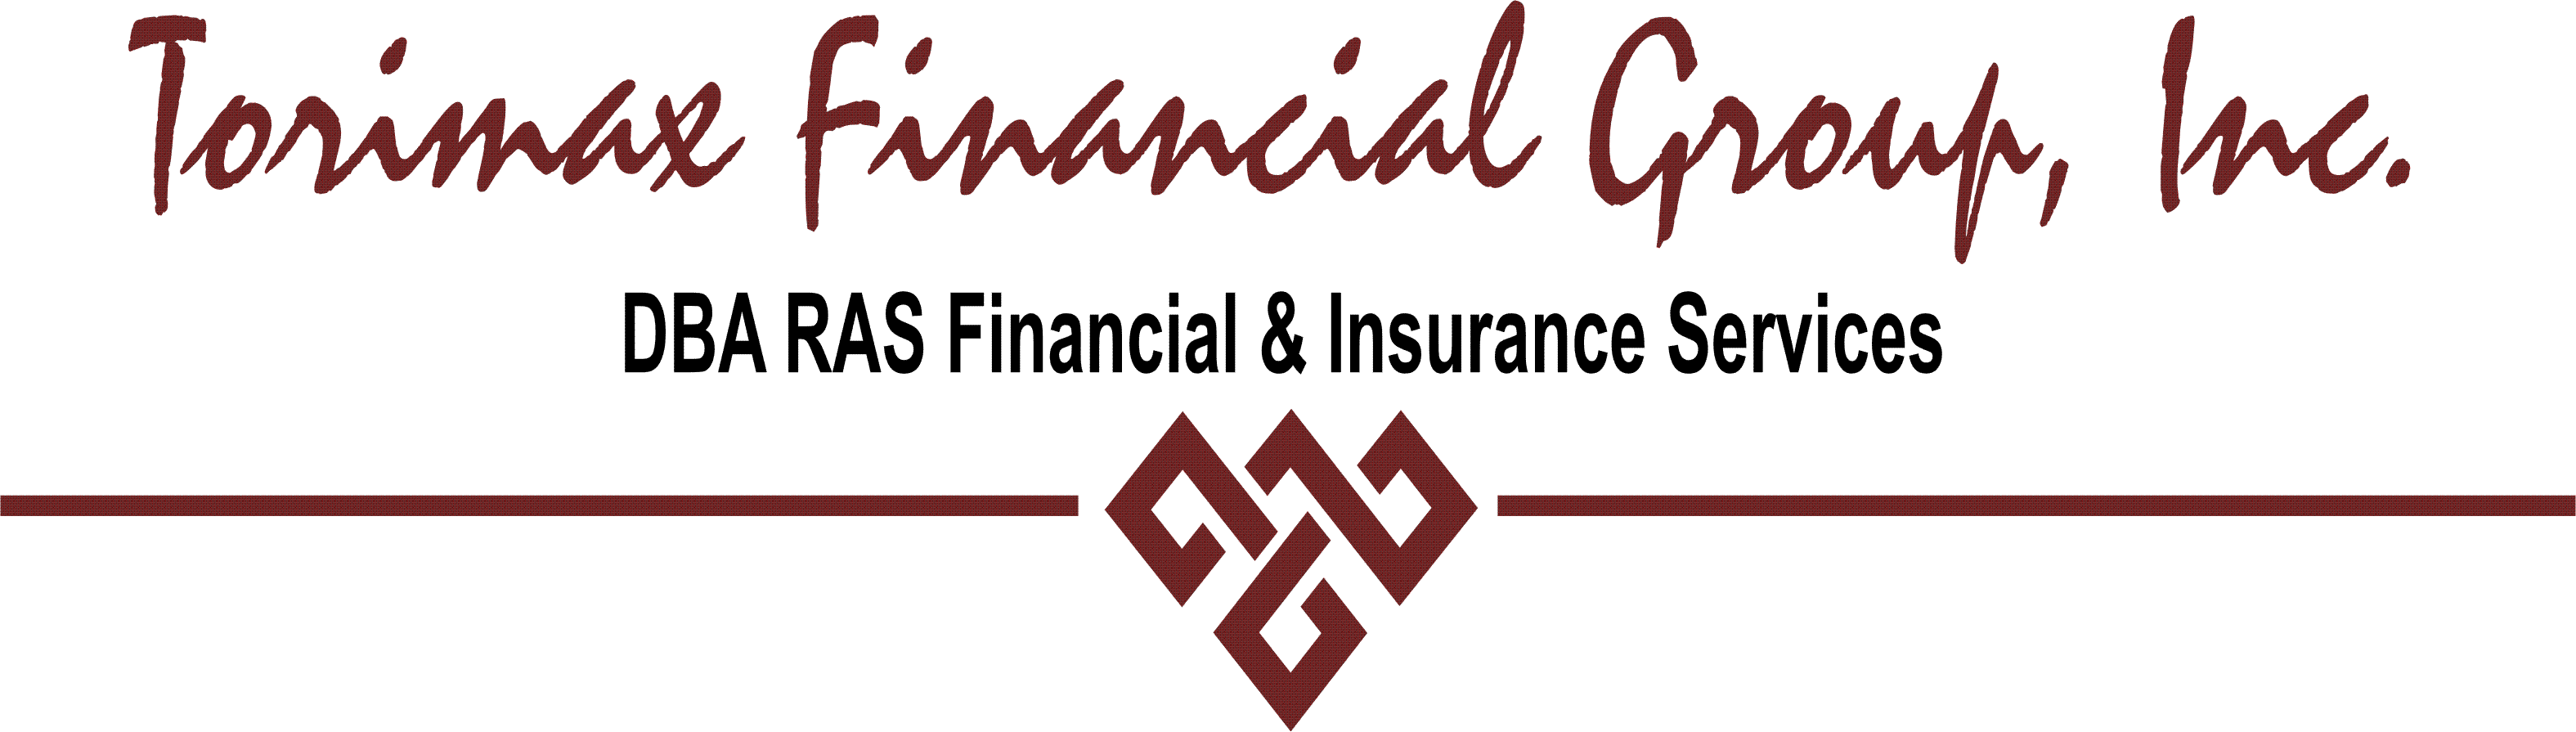 Logo for Torimax Financial Group, Inc.